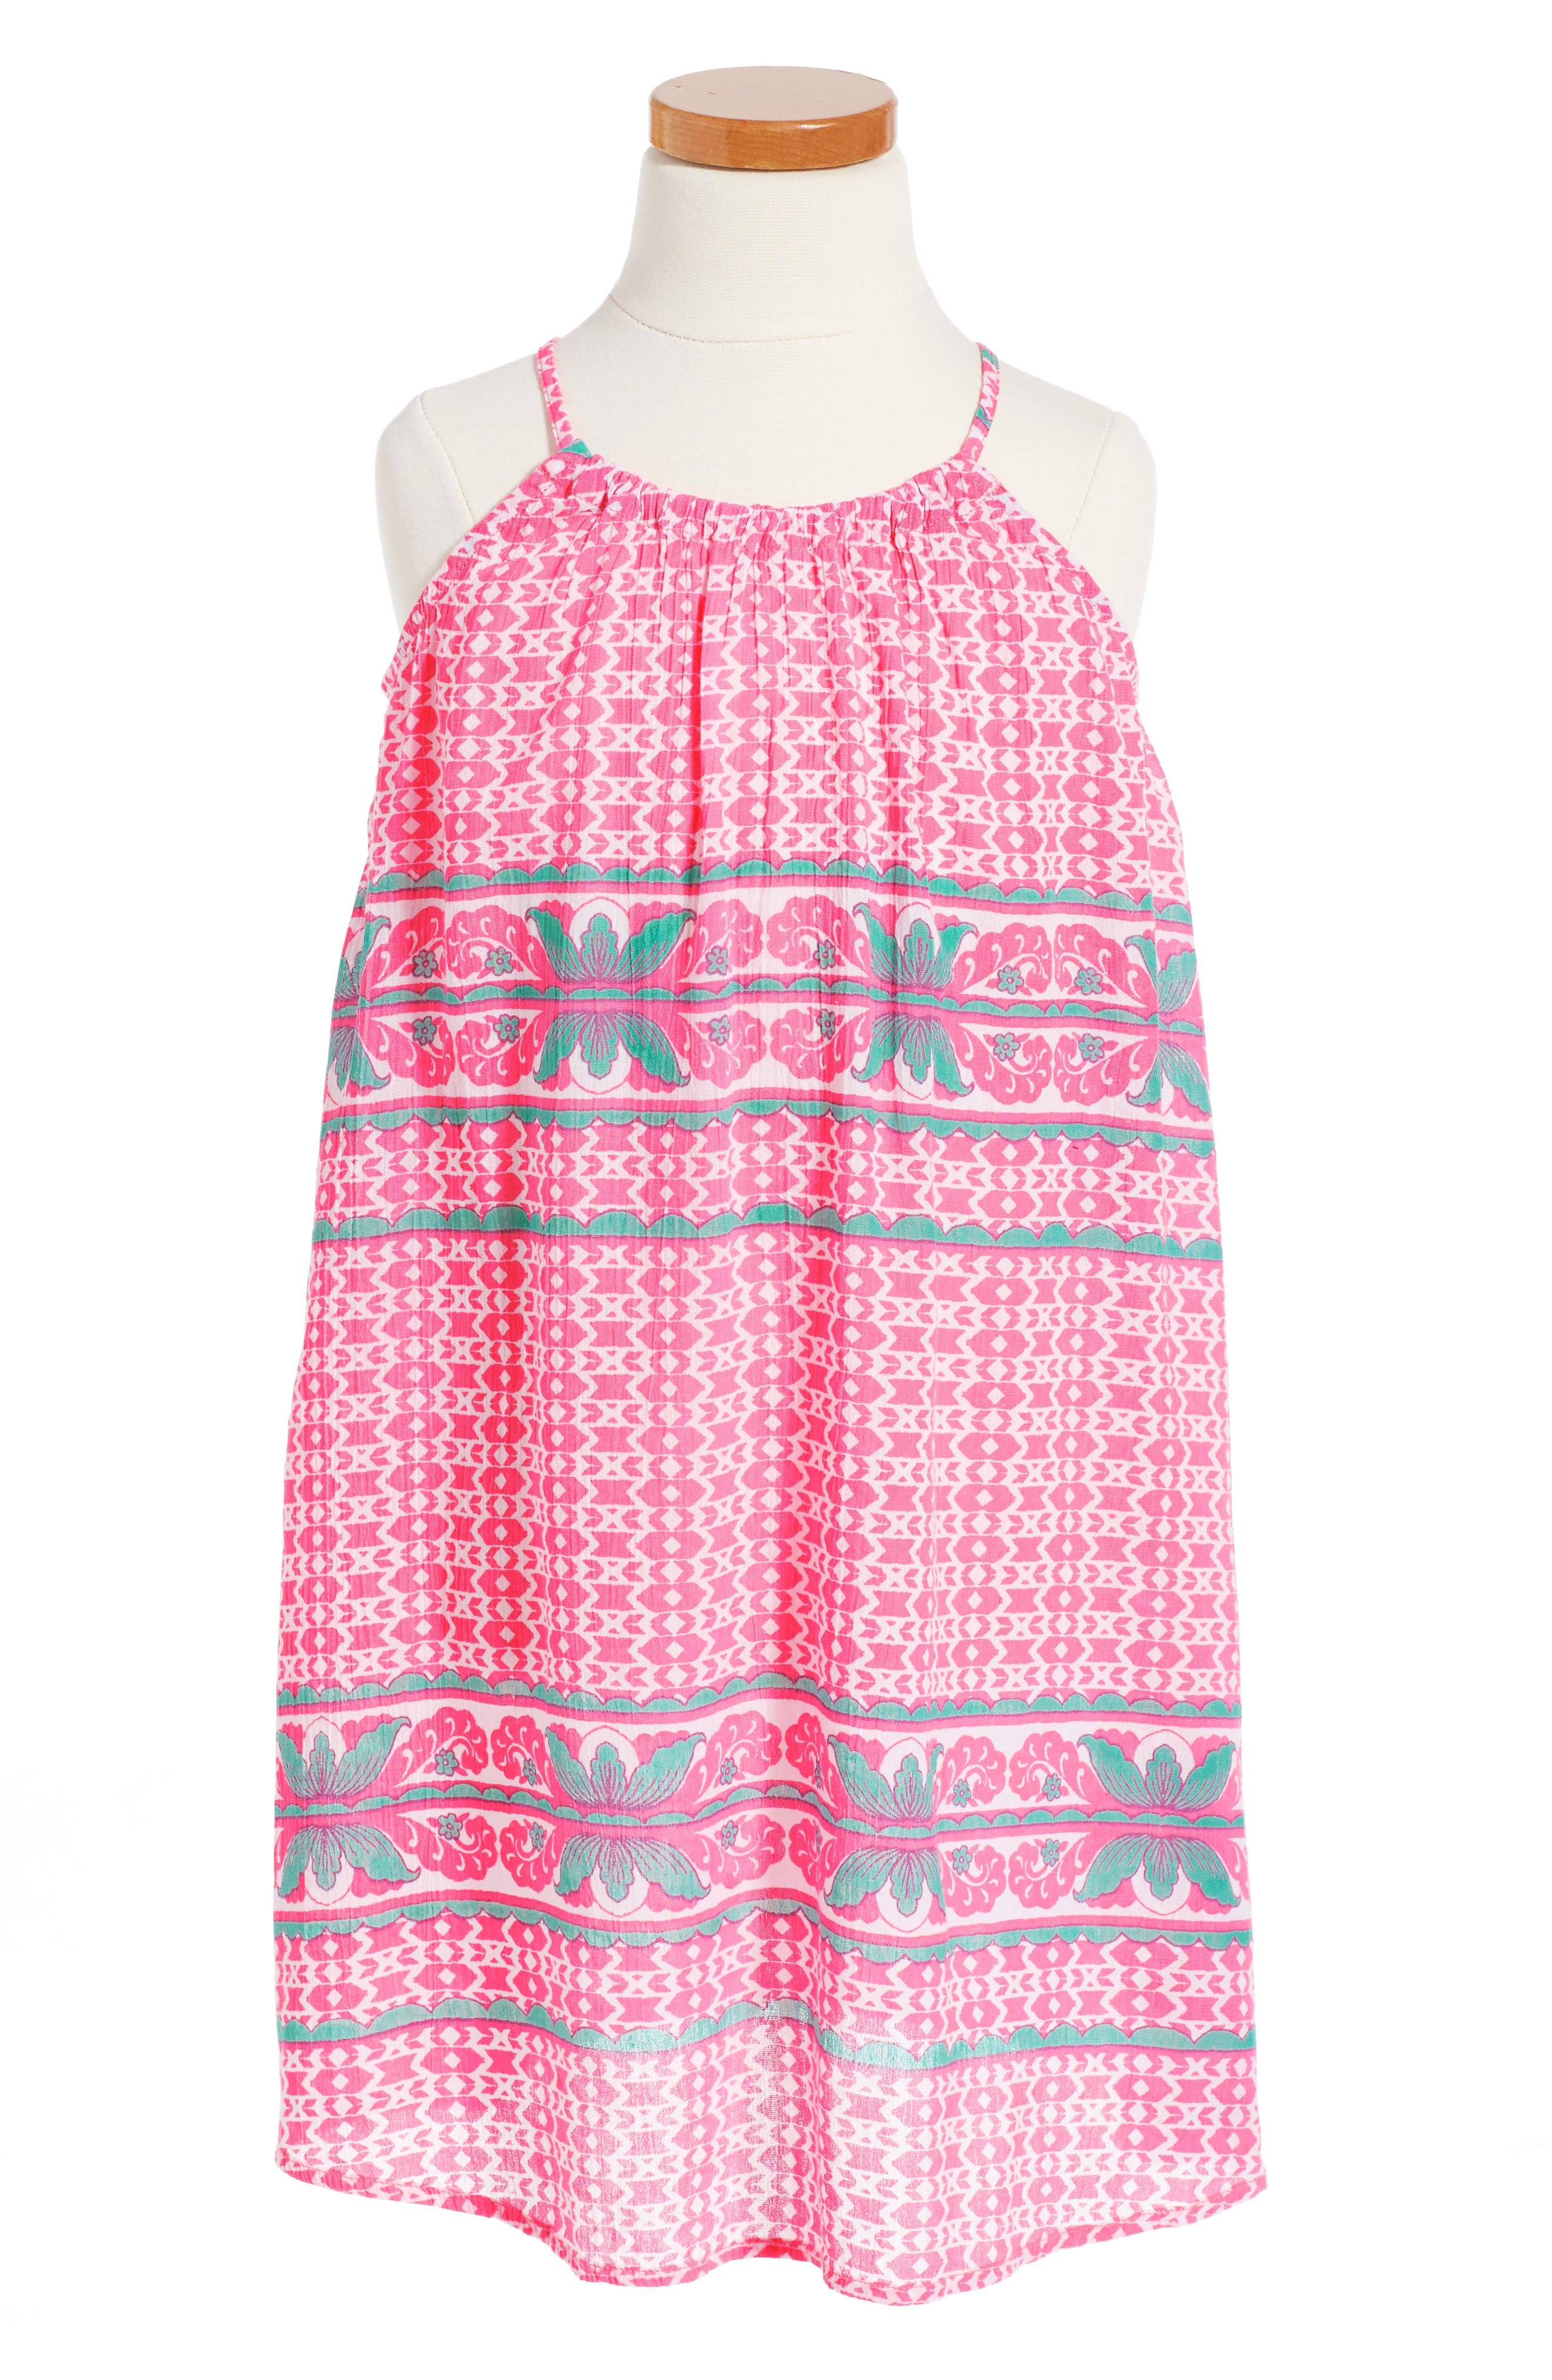 Main Image - Tucker + Tate Swing Dress (Toddler Girls, Little Girls & Big Girls)